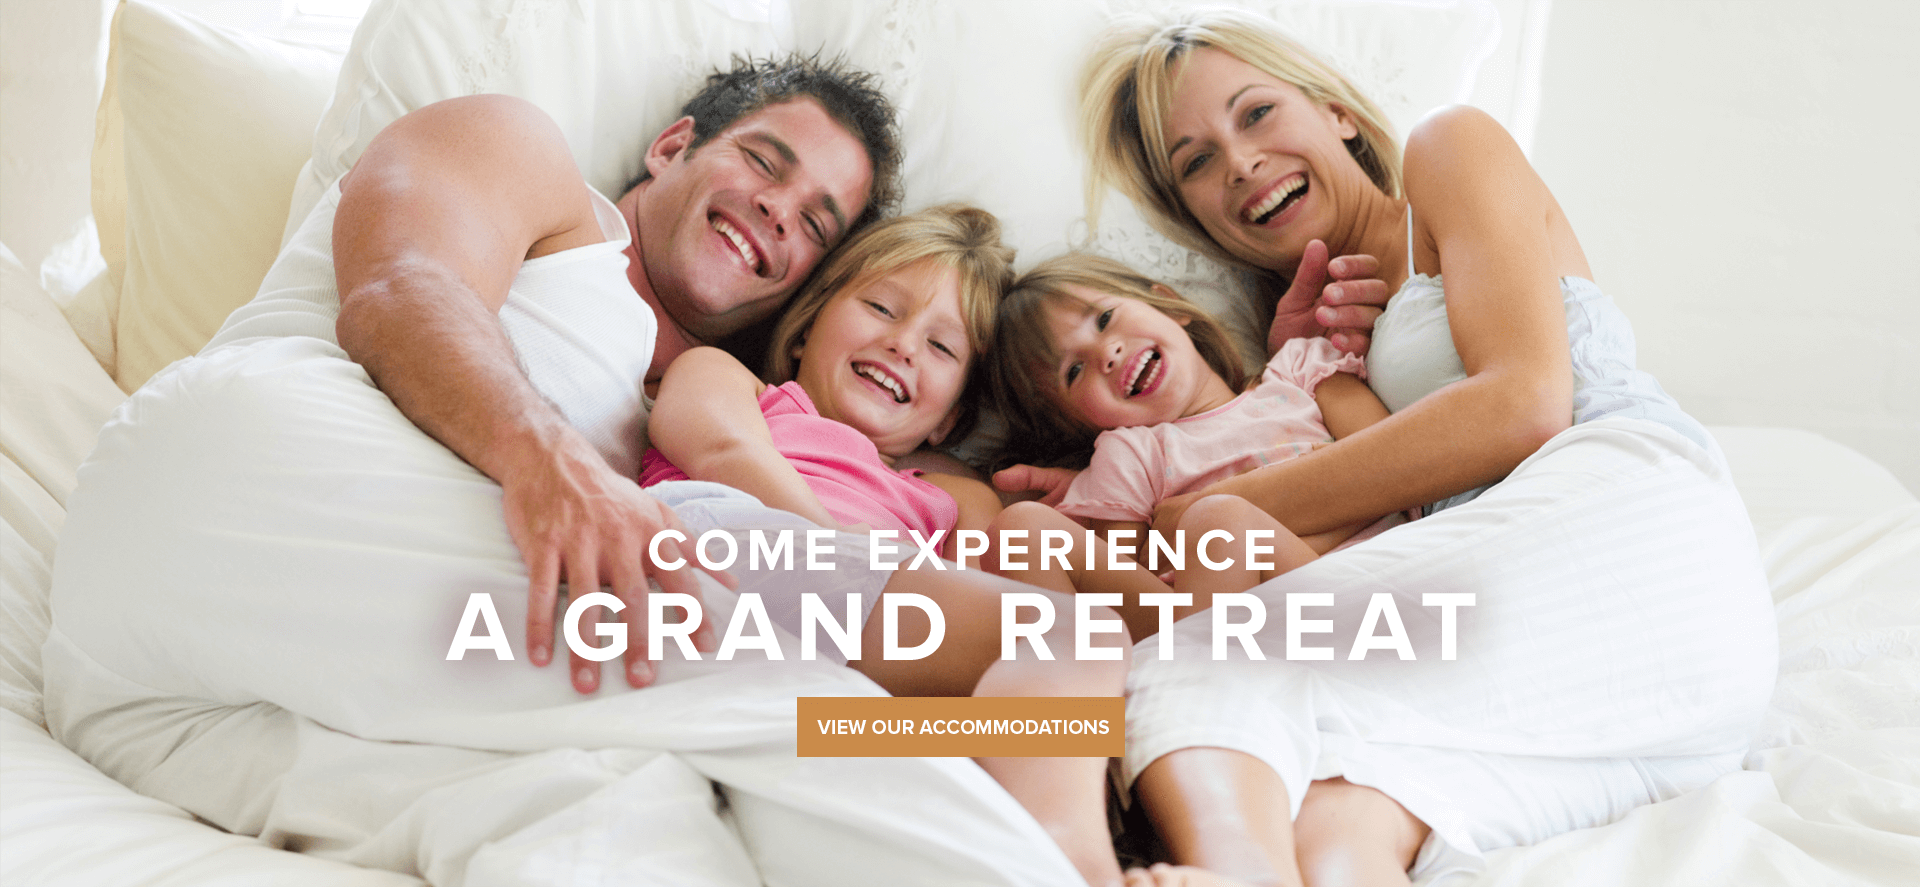 Come experience a grand retreat